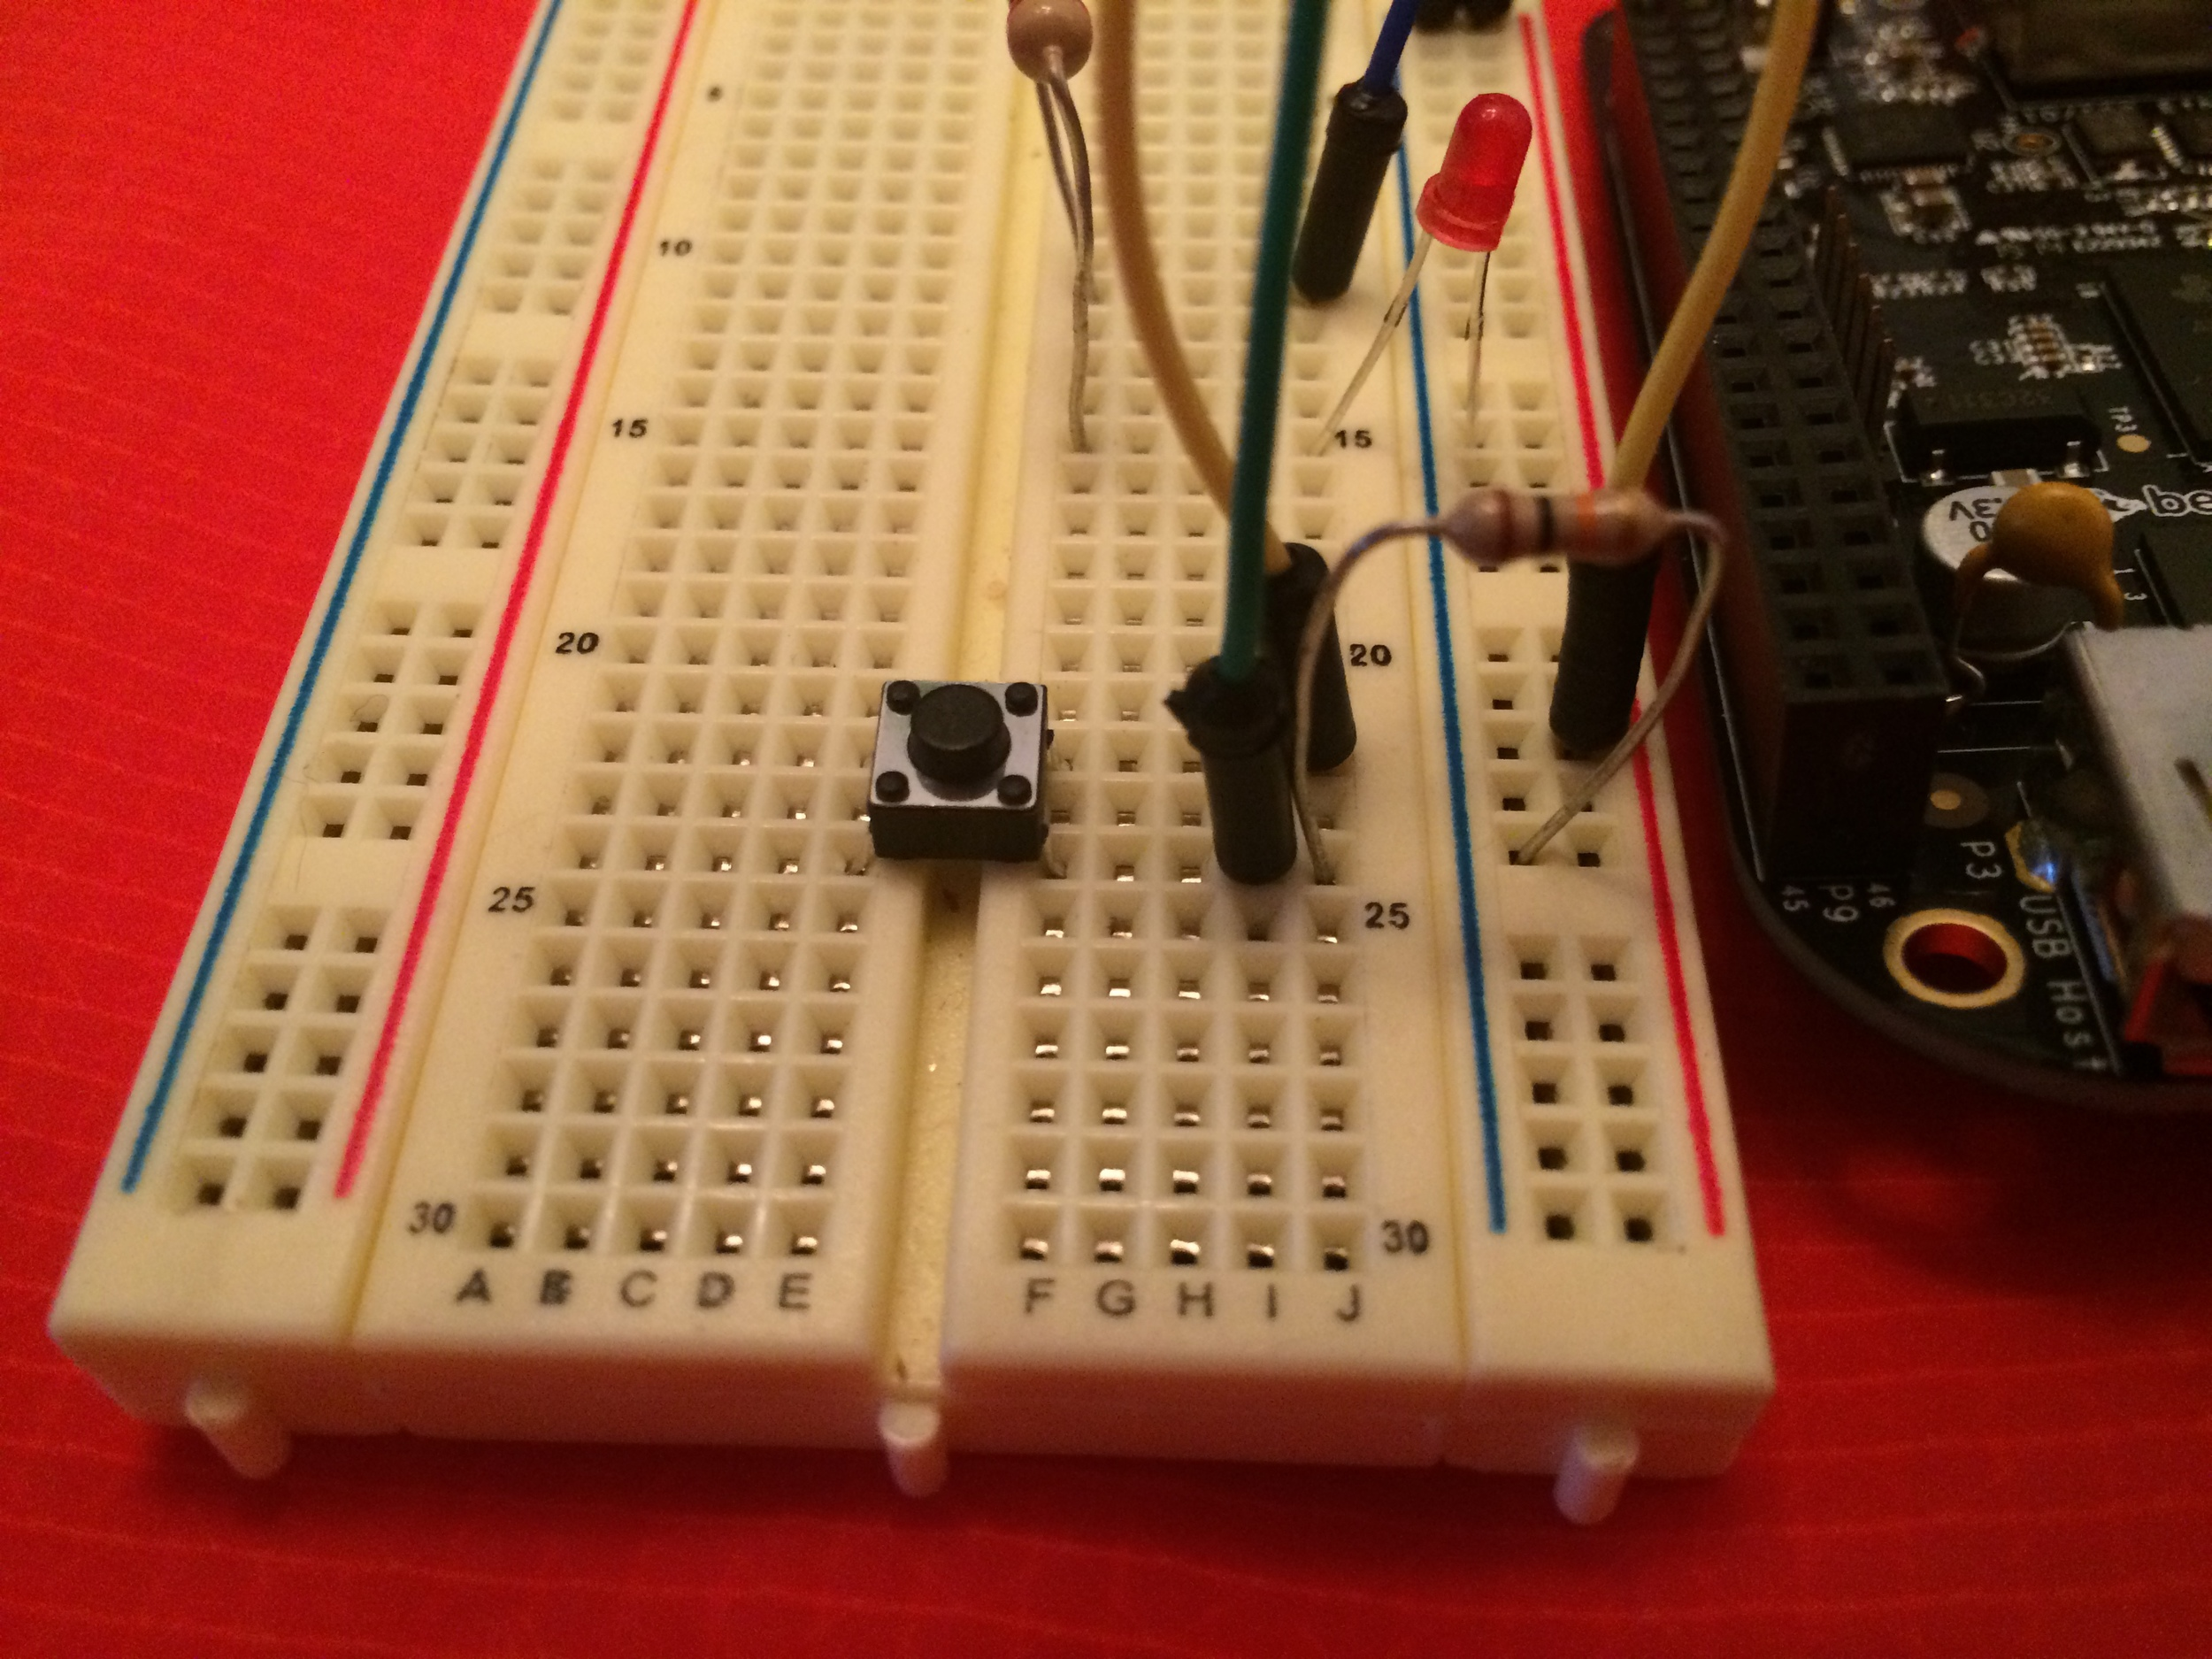 A momentary push button wired to GPIO pin 45